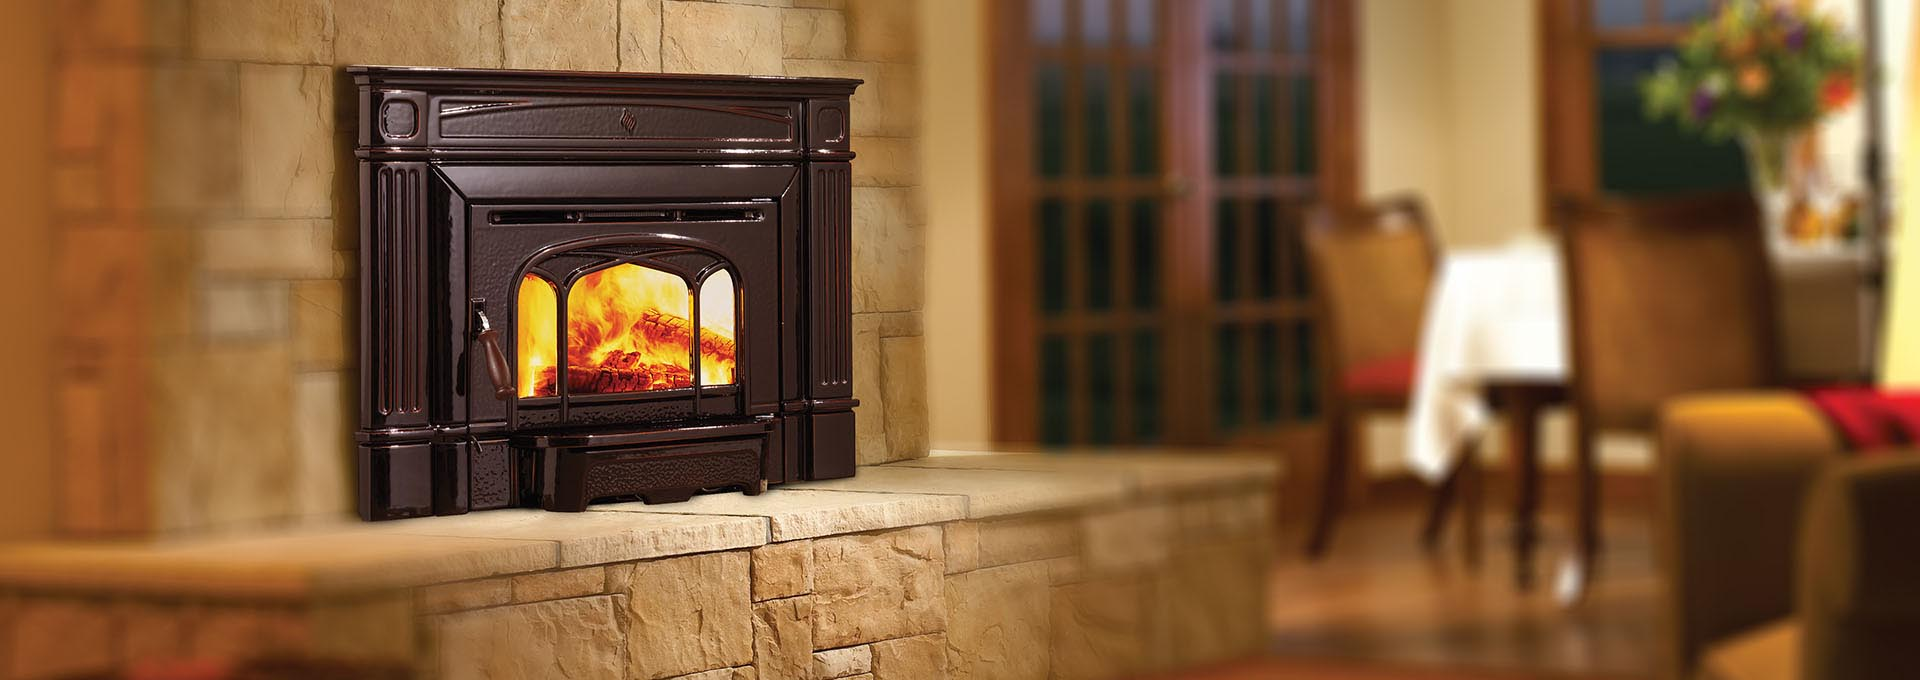 insert inc tech inserts quadra services fire wood sales fireplace fireplaces woodins energy qdf kenora